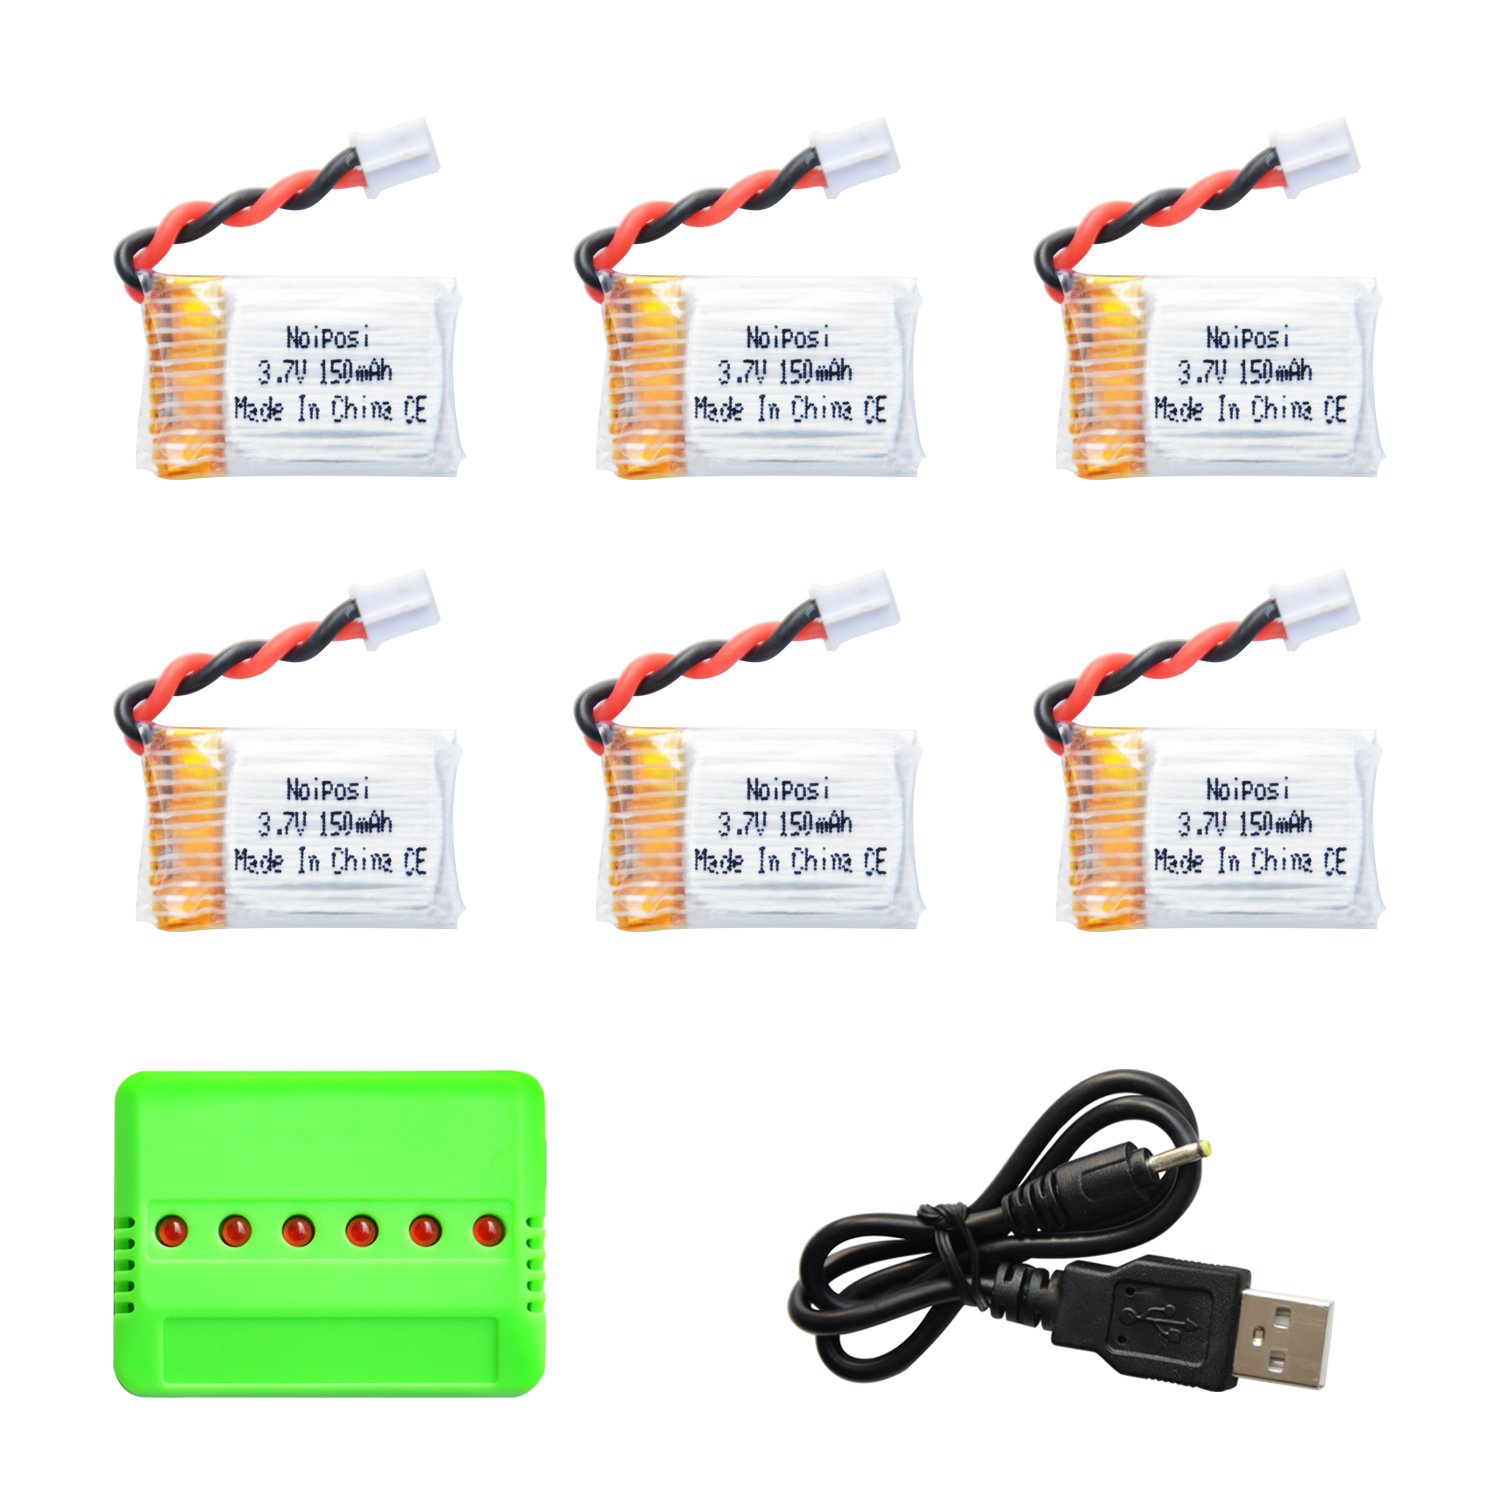 Cheap Fiamm Battery 150 Find Deals On Line At 12 Volt Horn Wiring Diagram Product Get Quotations Noiposi 6pcs Upgraded 37v 150mah With X6 Charger Conversion Cable For Jjrc H36 Eachine